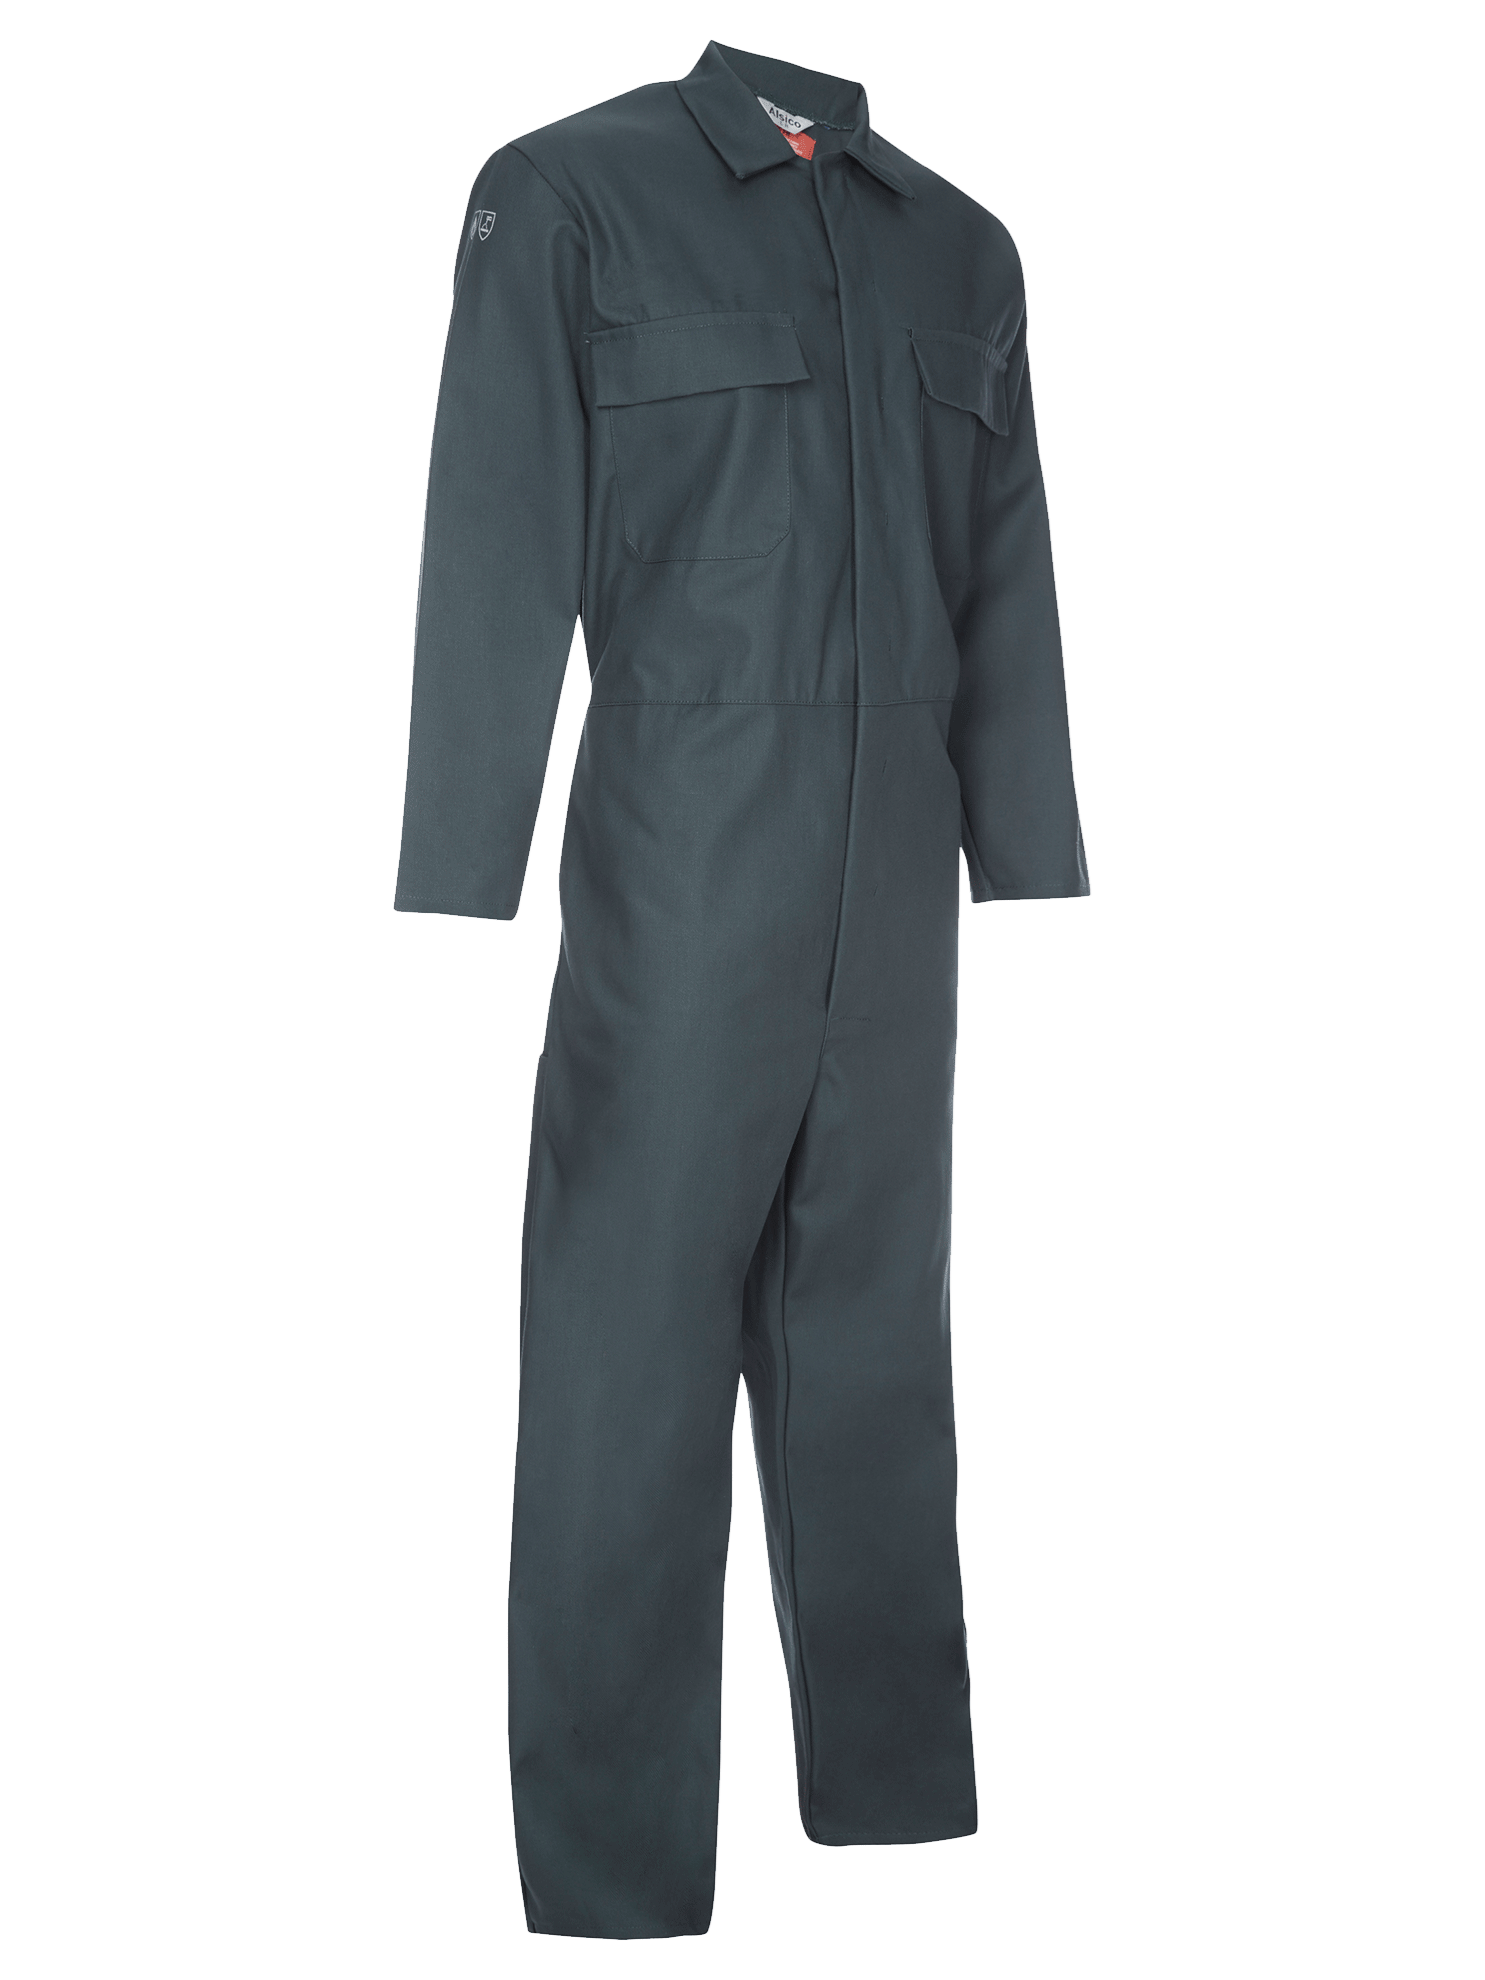 Picture of Coverall made with Zeus FR - Spruce Green